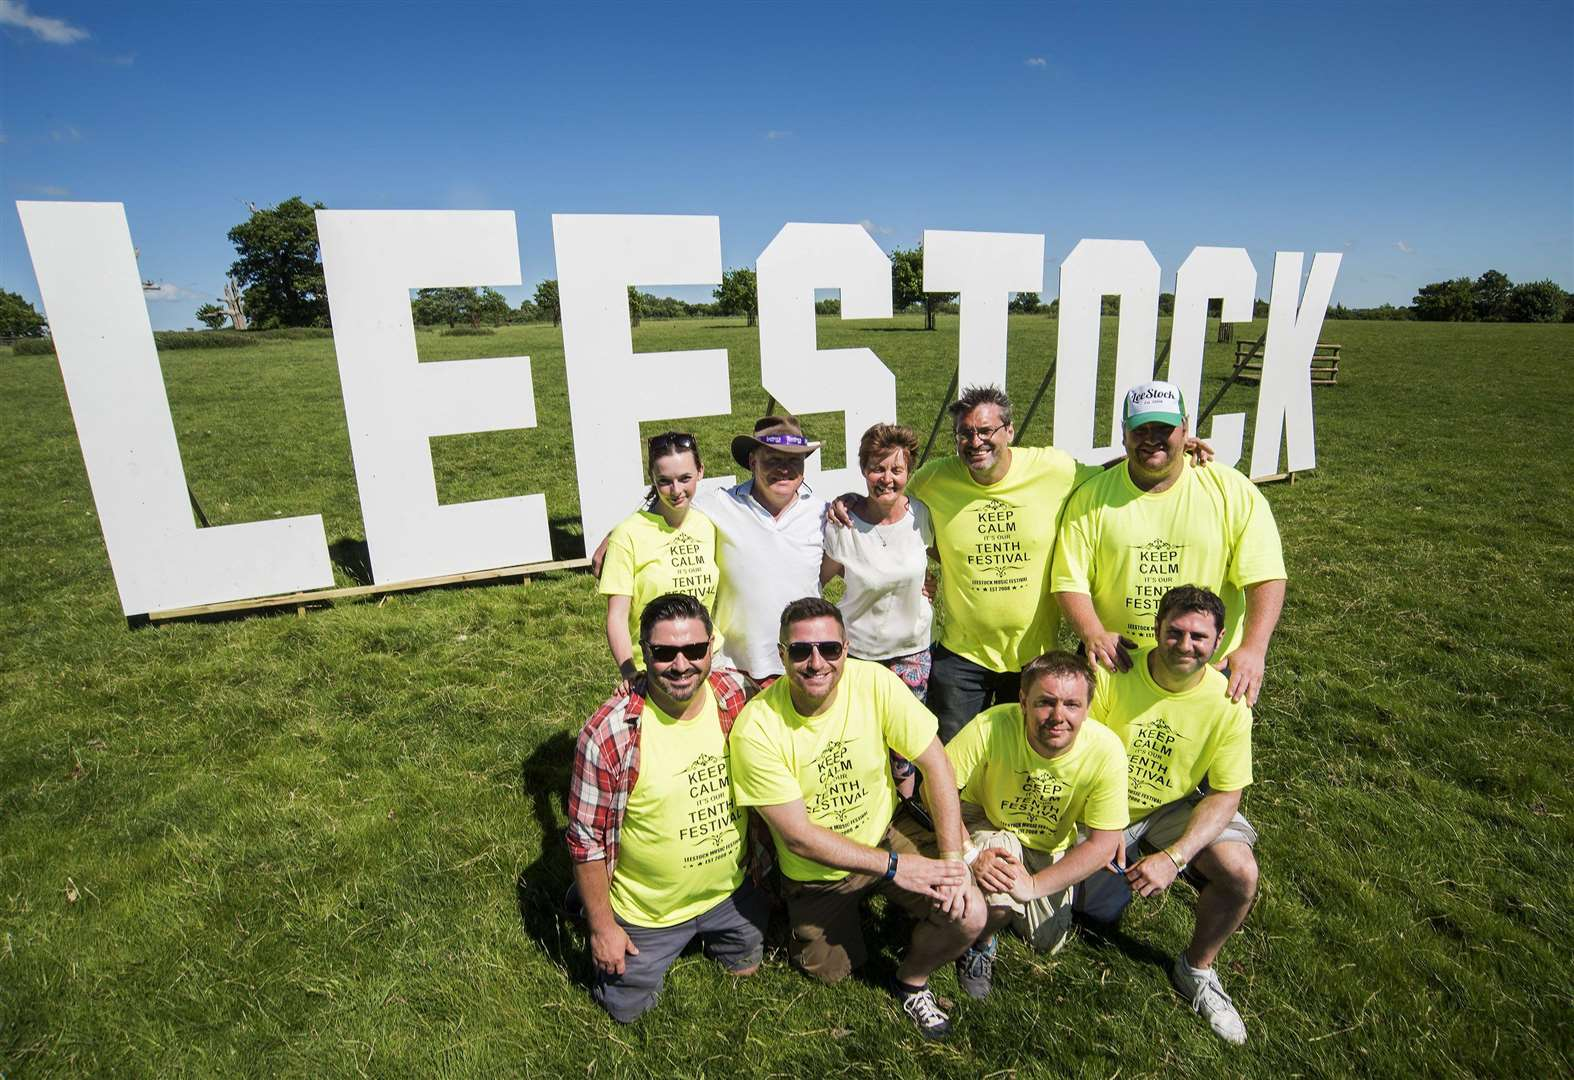 LeeStock music festival hailed as huge success after raising £20,000